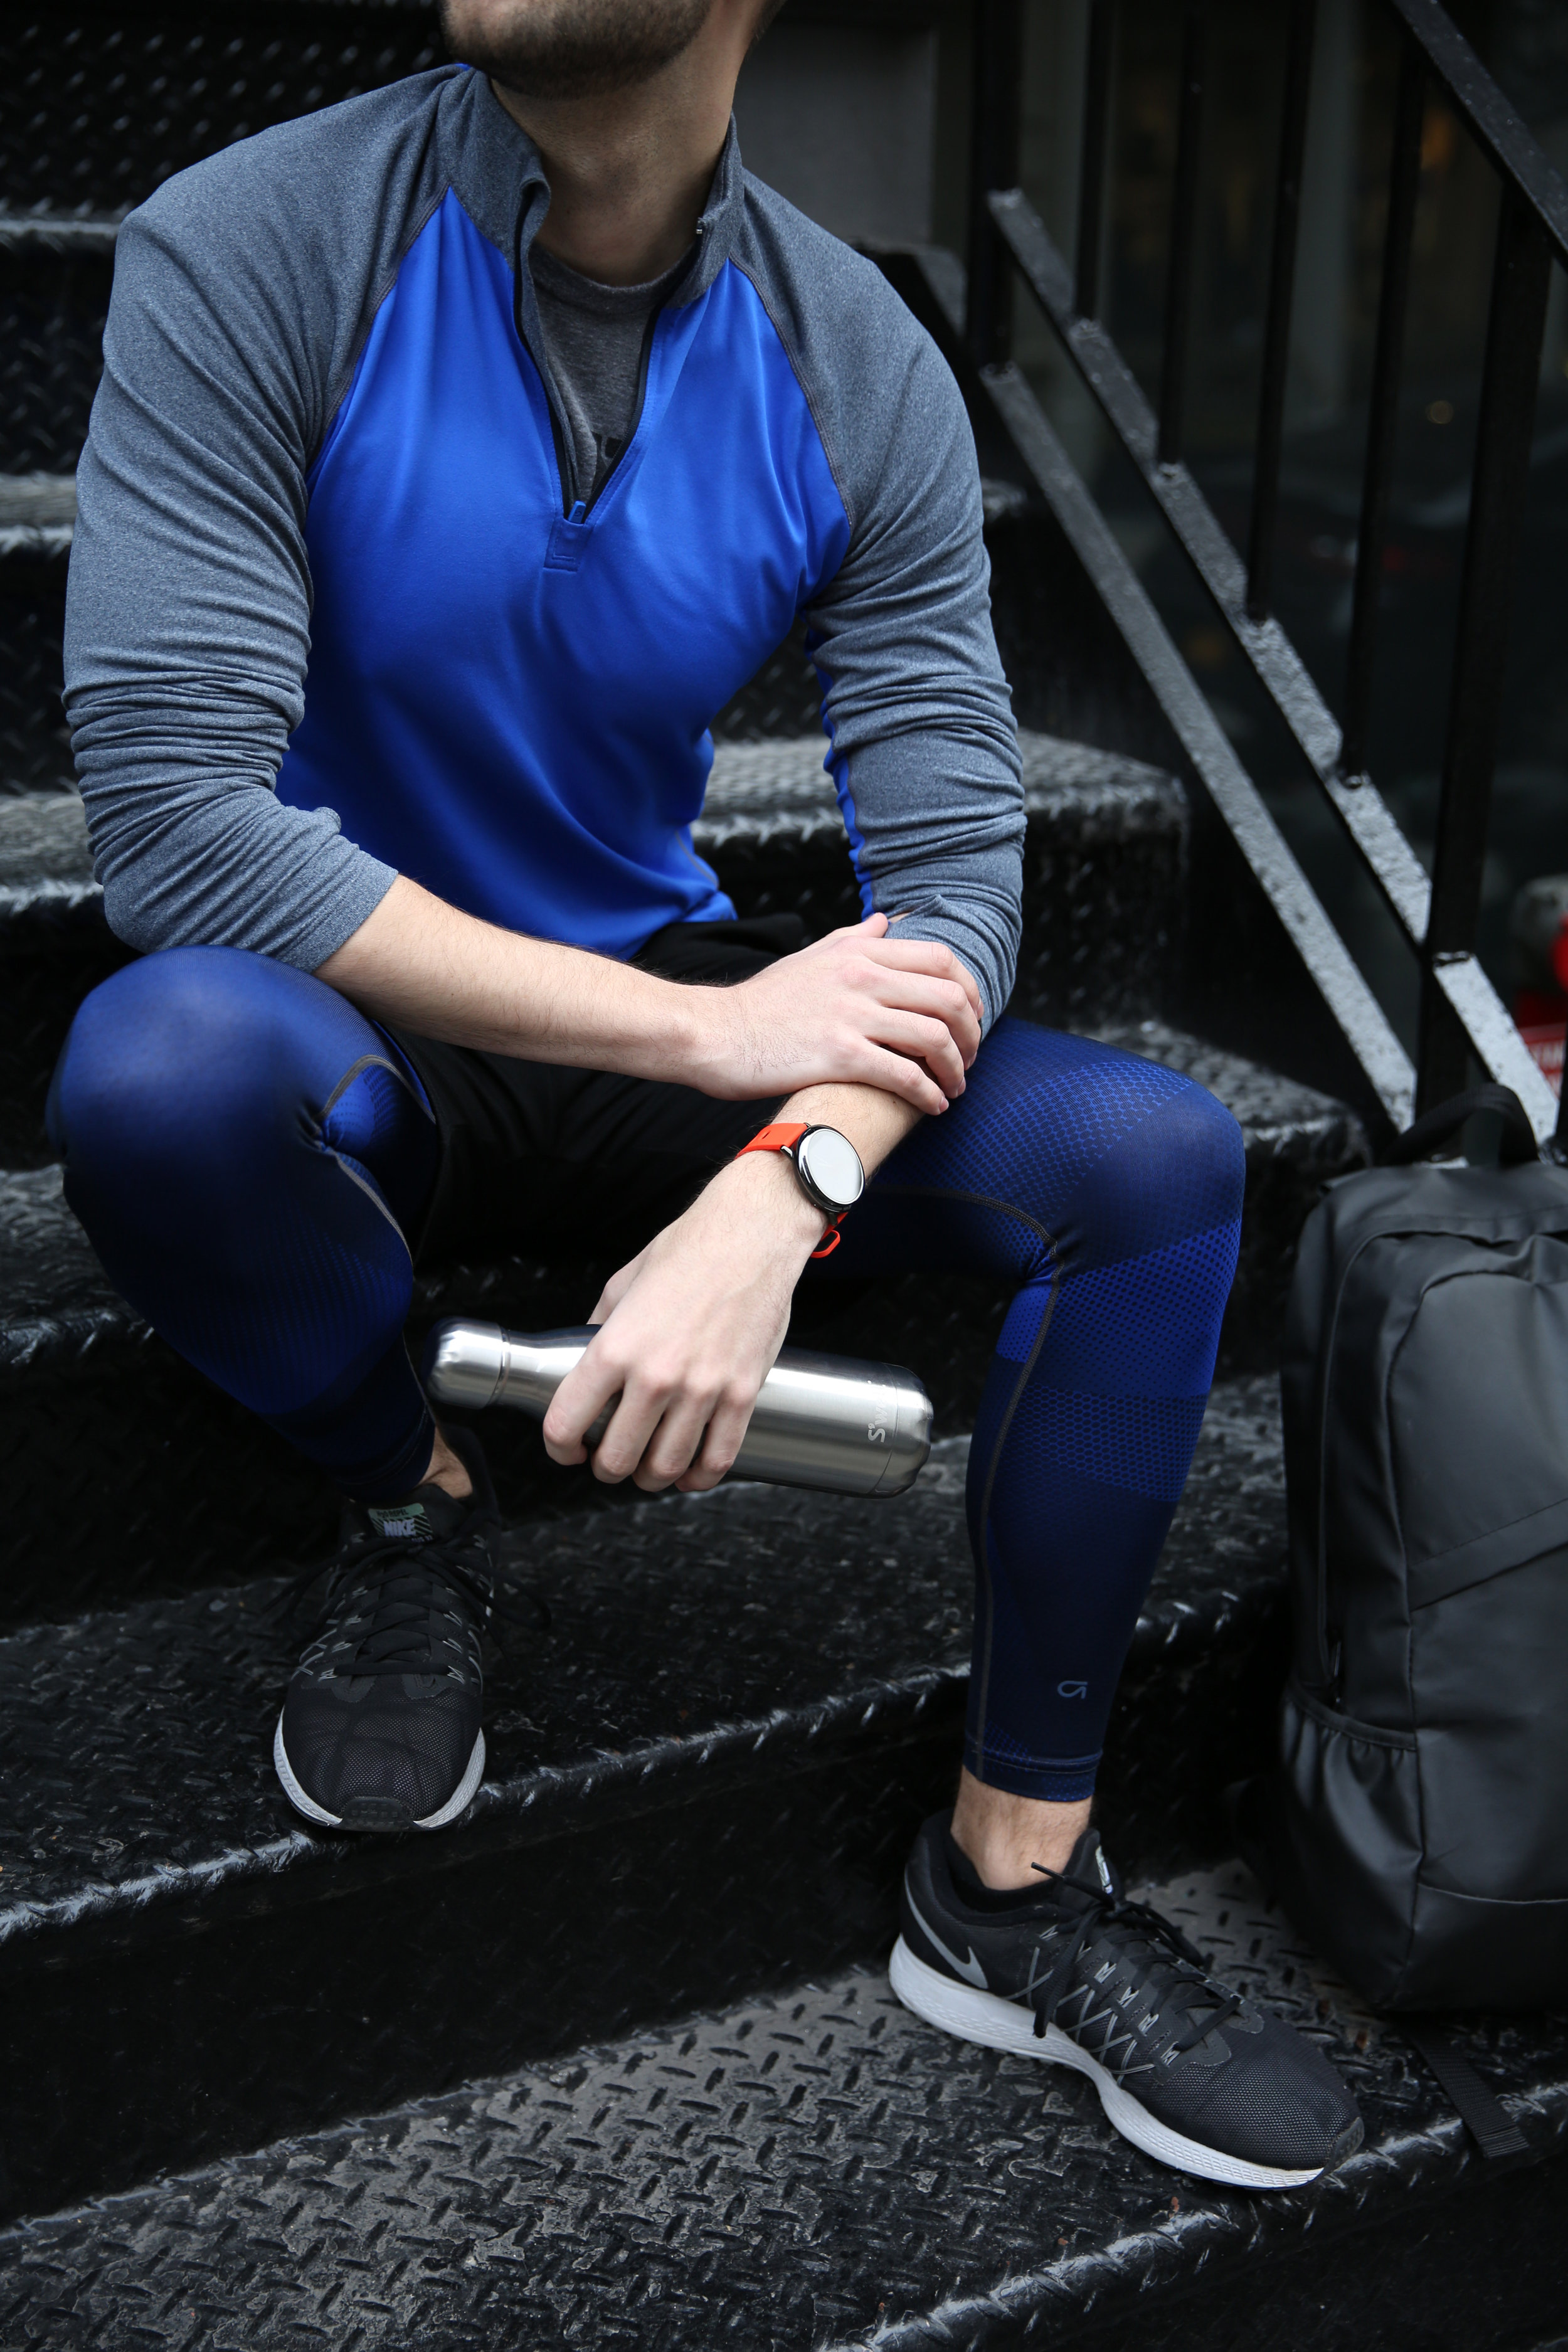 Amazfit- Fitness Tracker Giveaway